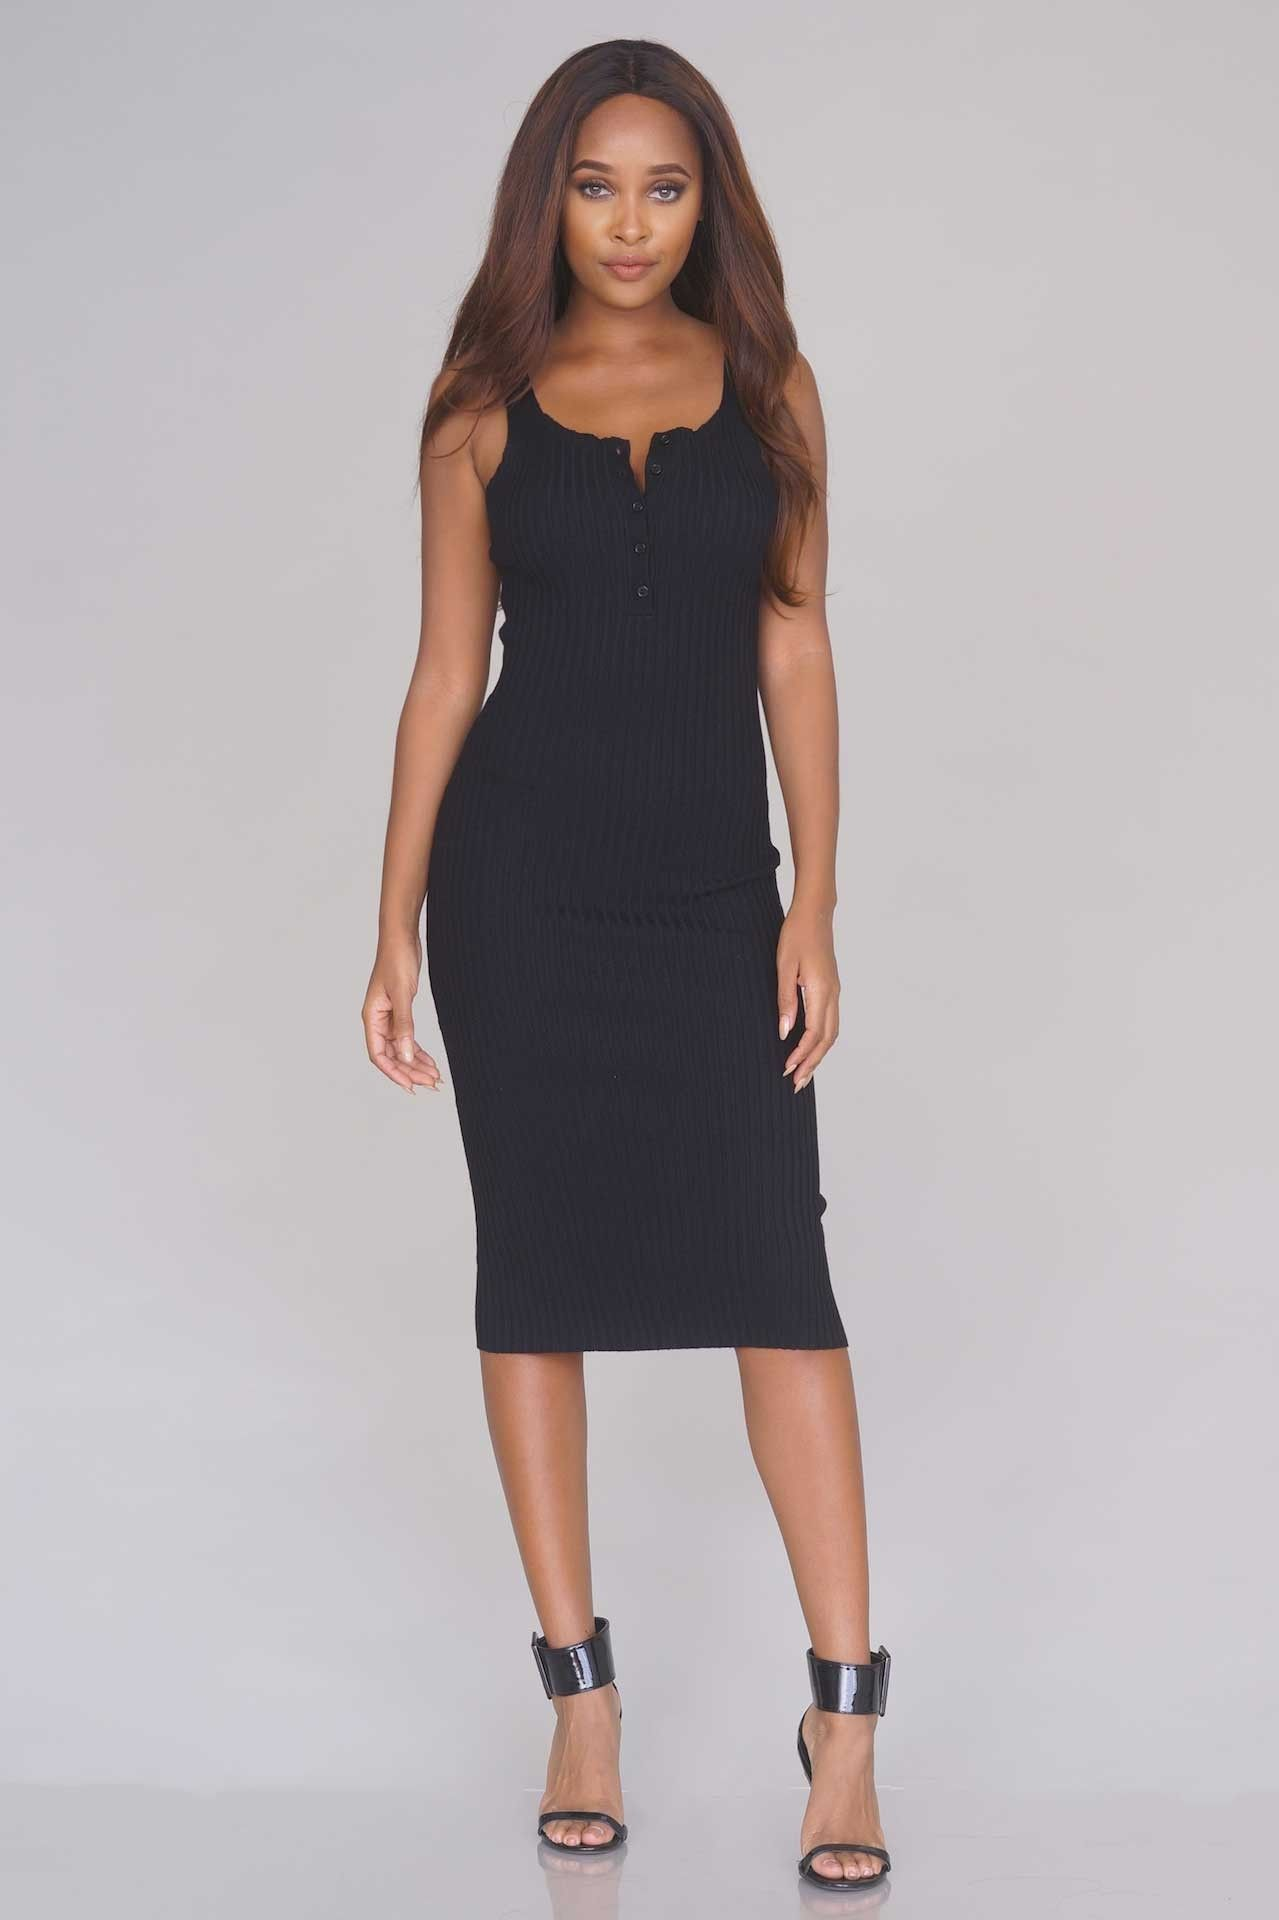 Sleeveless ribbed midi dress black new arrivals outfit